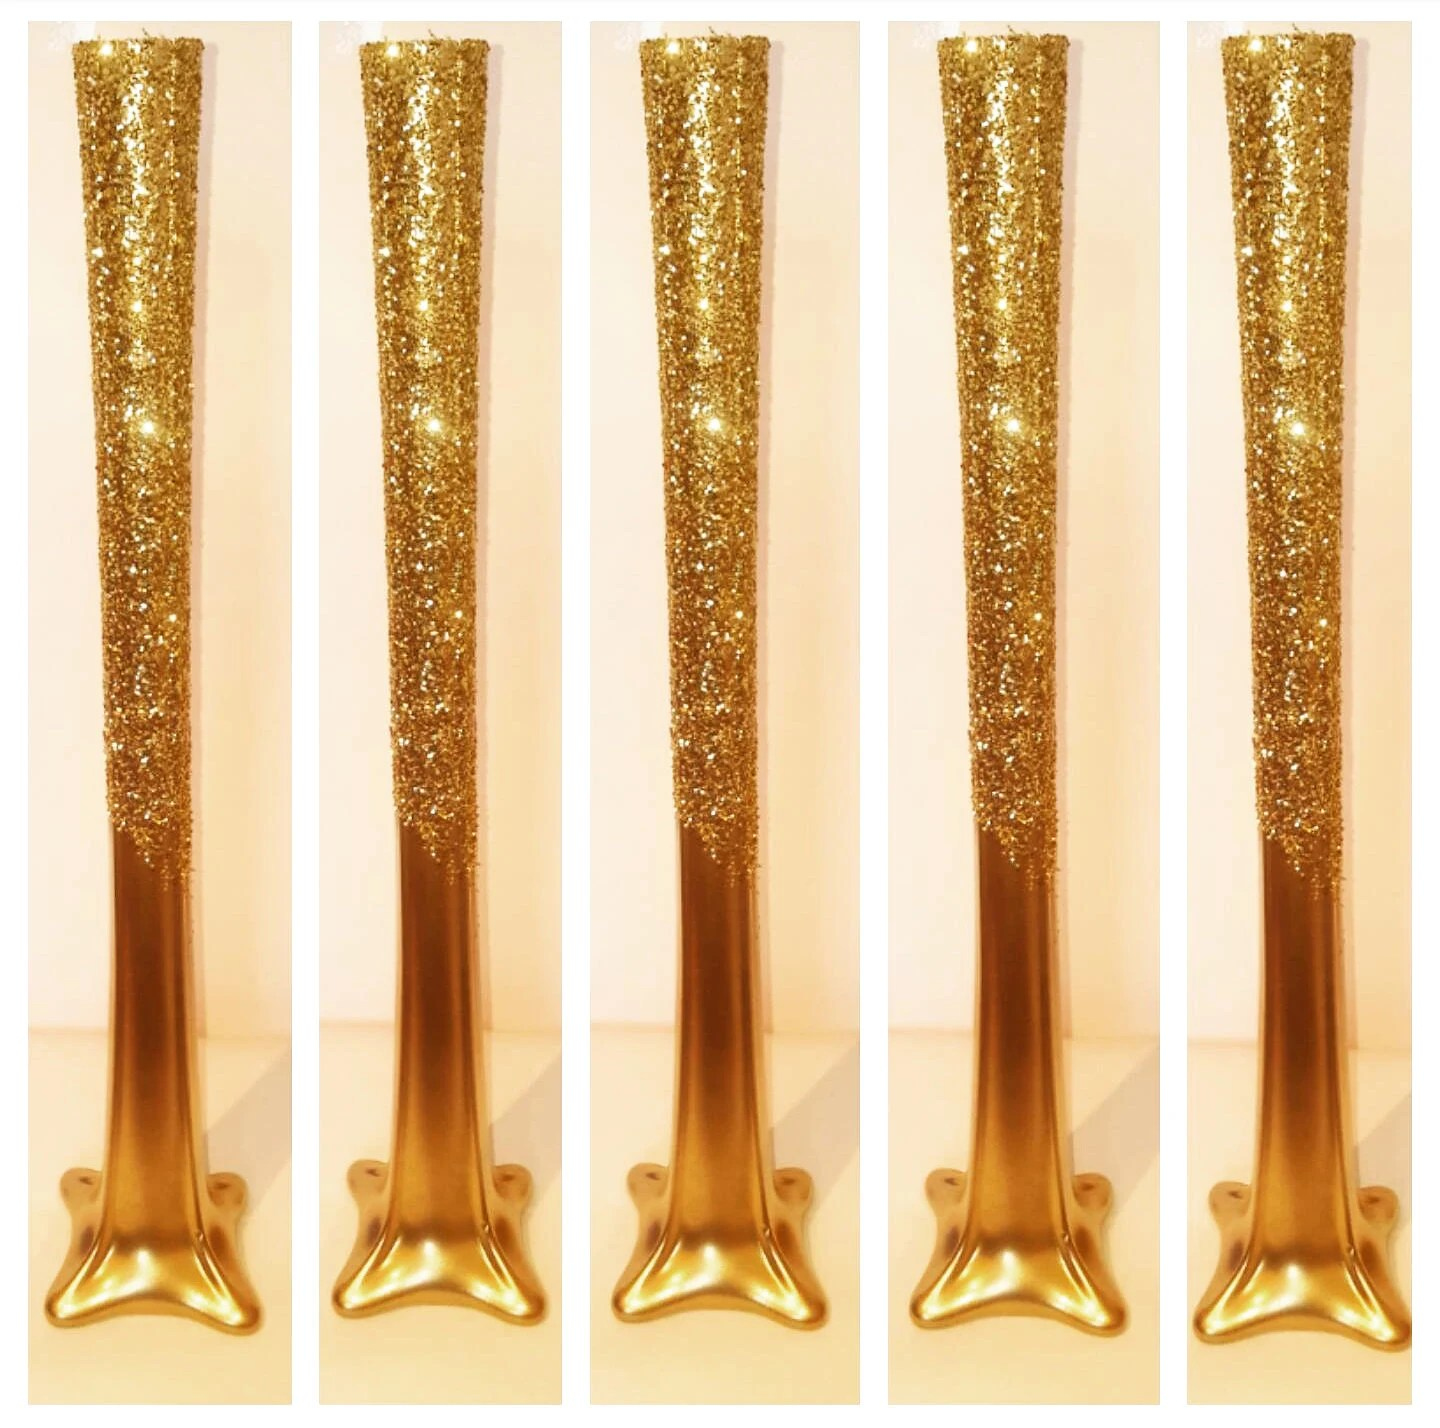 Vase Gold Set Of 5 20